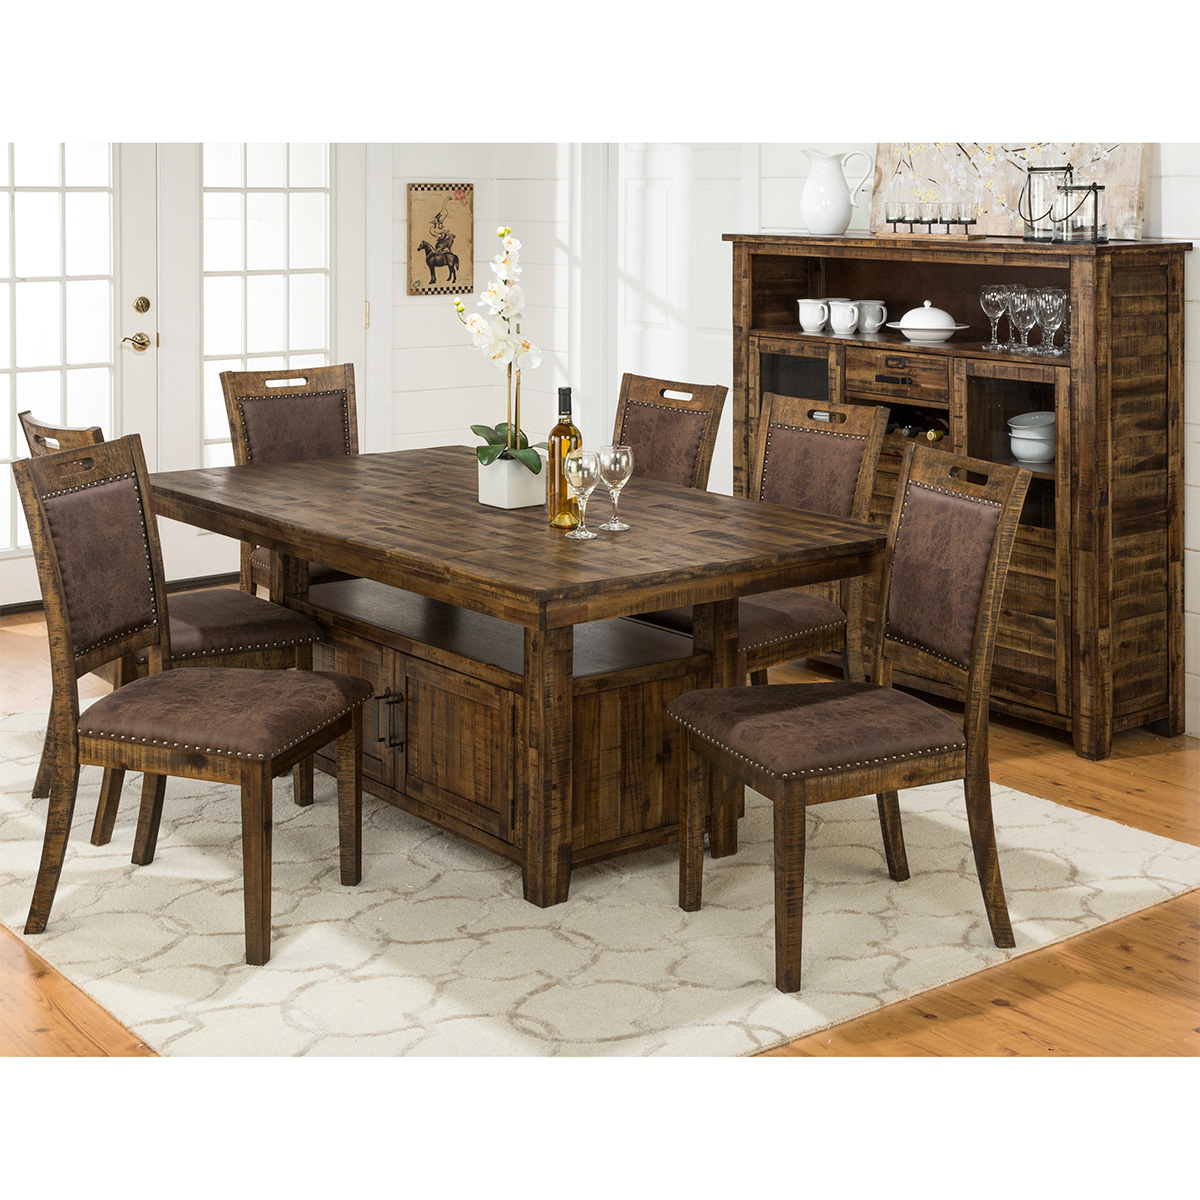 Cannon valley dining table w storage base in distressed acacia by jofran tap to expand